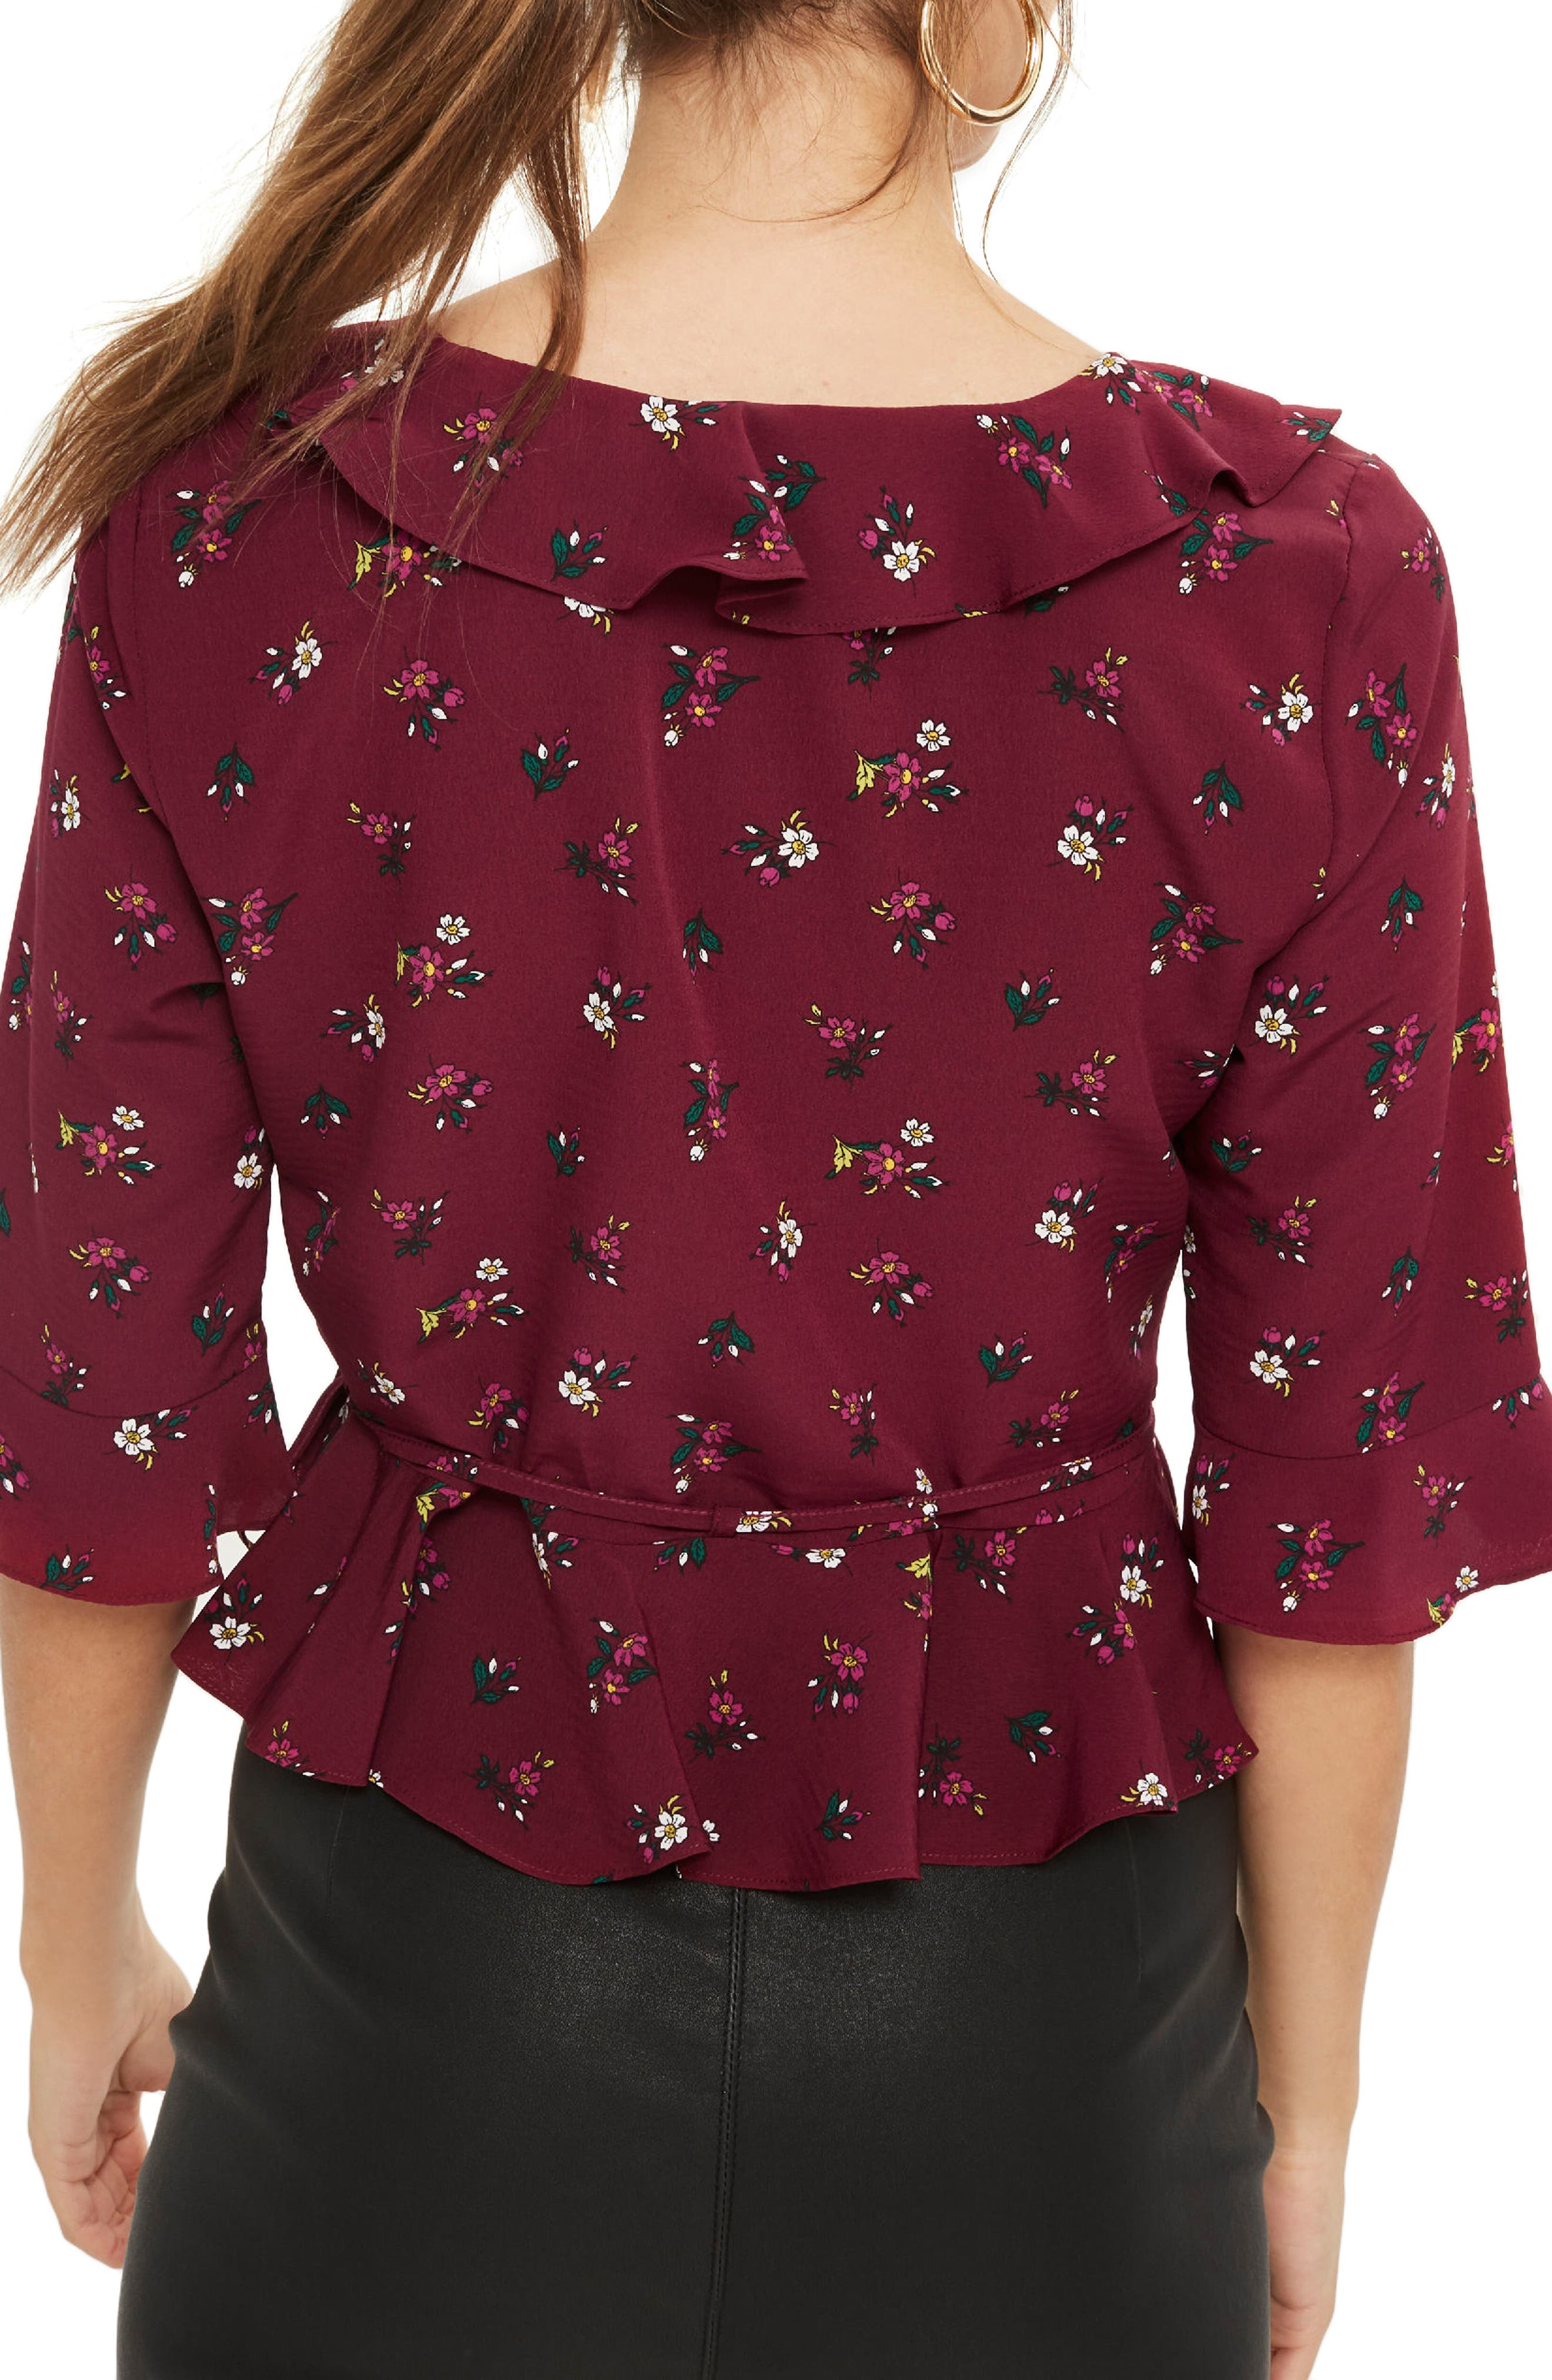 Phoebe Frilly Blouse,                             Alternate thumbnail 14, color,